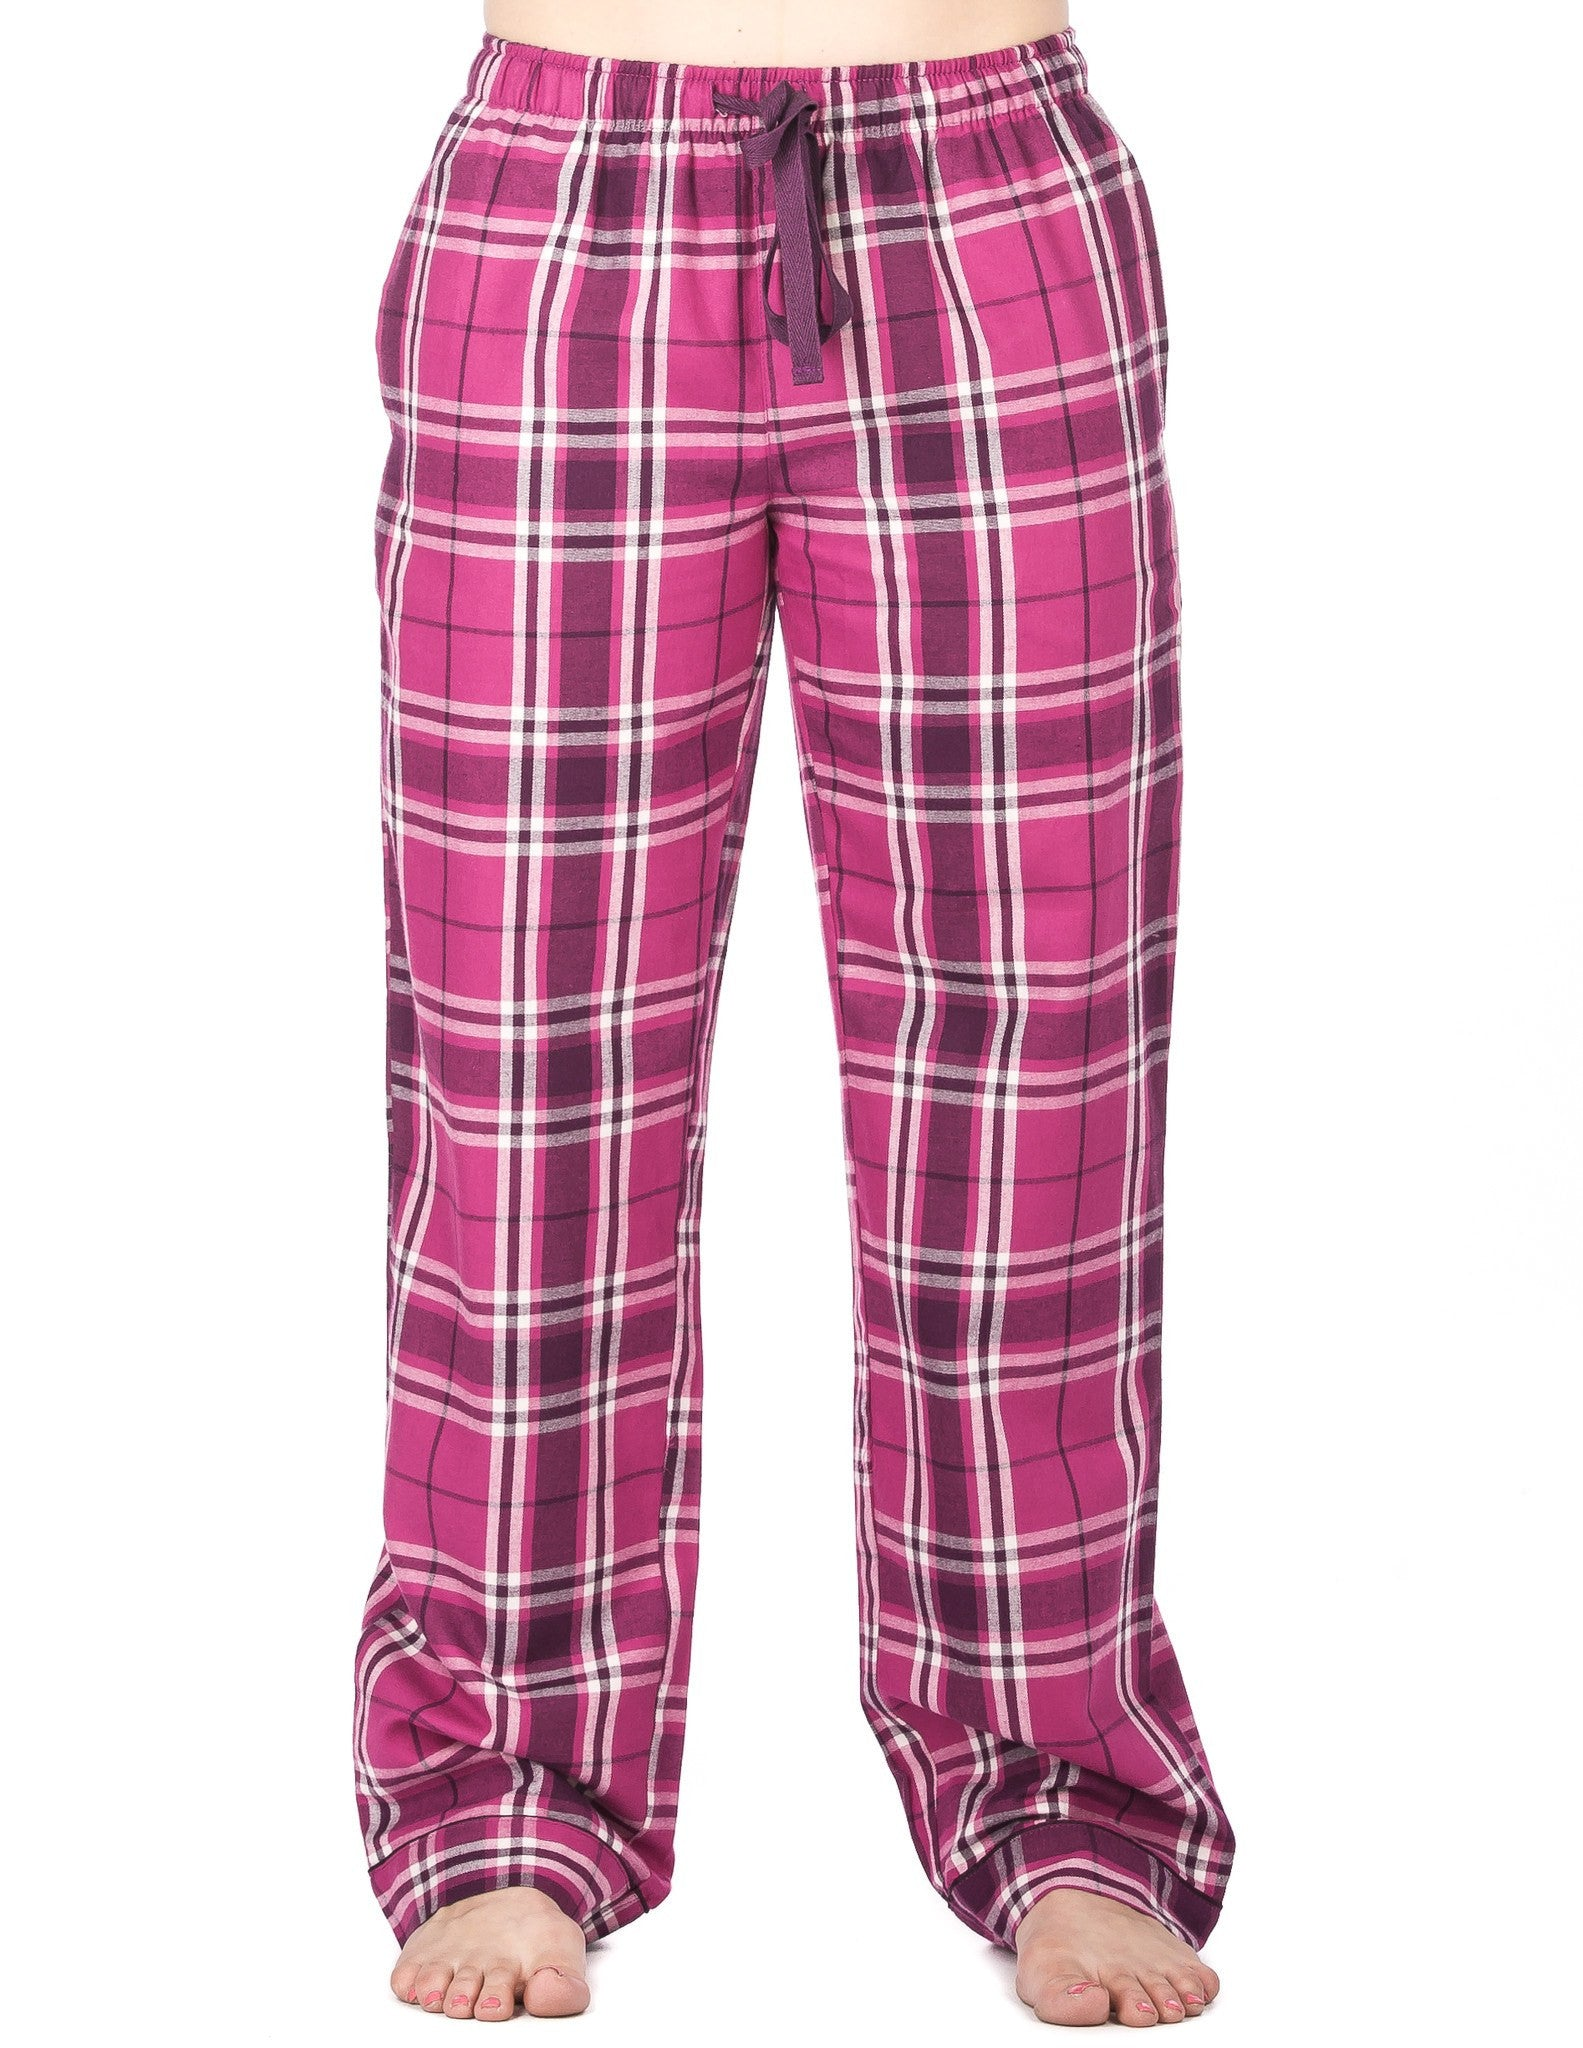 Relaxed Fit Womens Premium 100% Cotton Flannel Lounge Pants